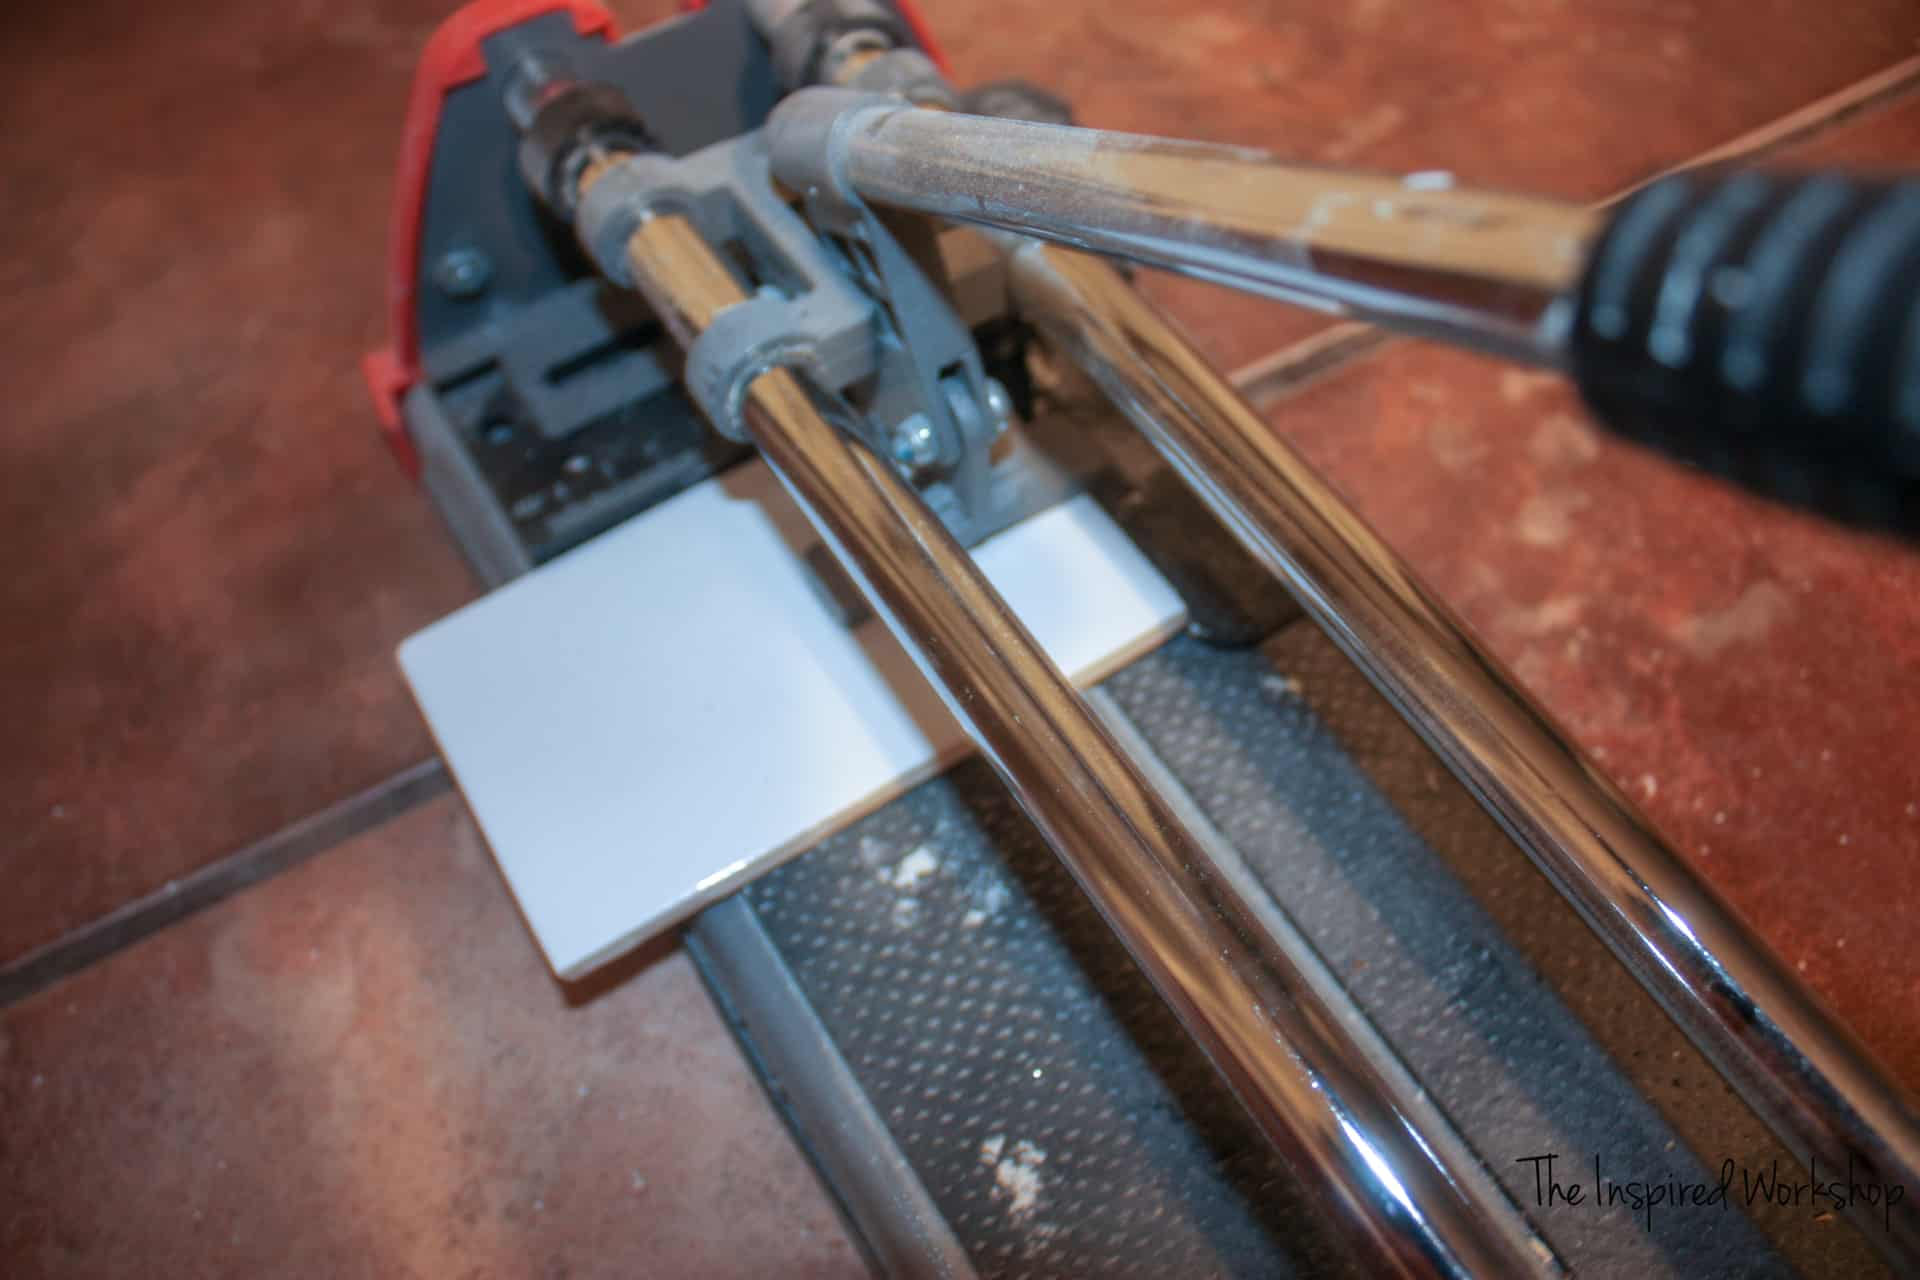 Using a tile cutter to cut tile